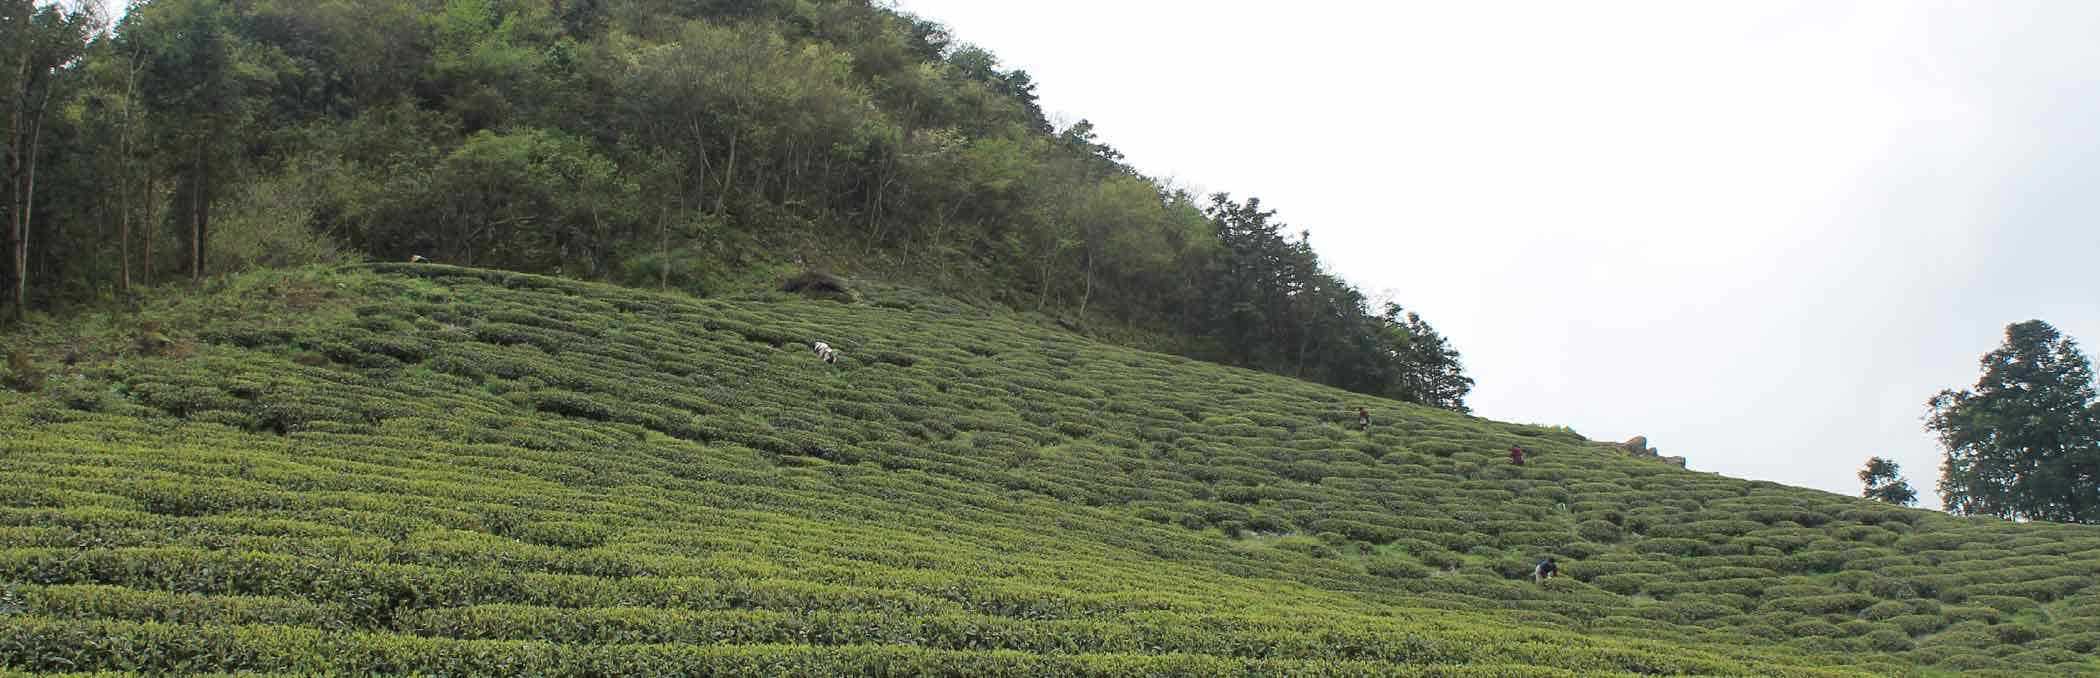 Tea Gardens, Hangzhou China